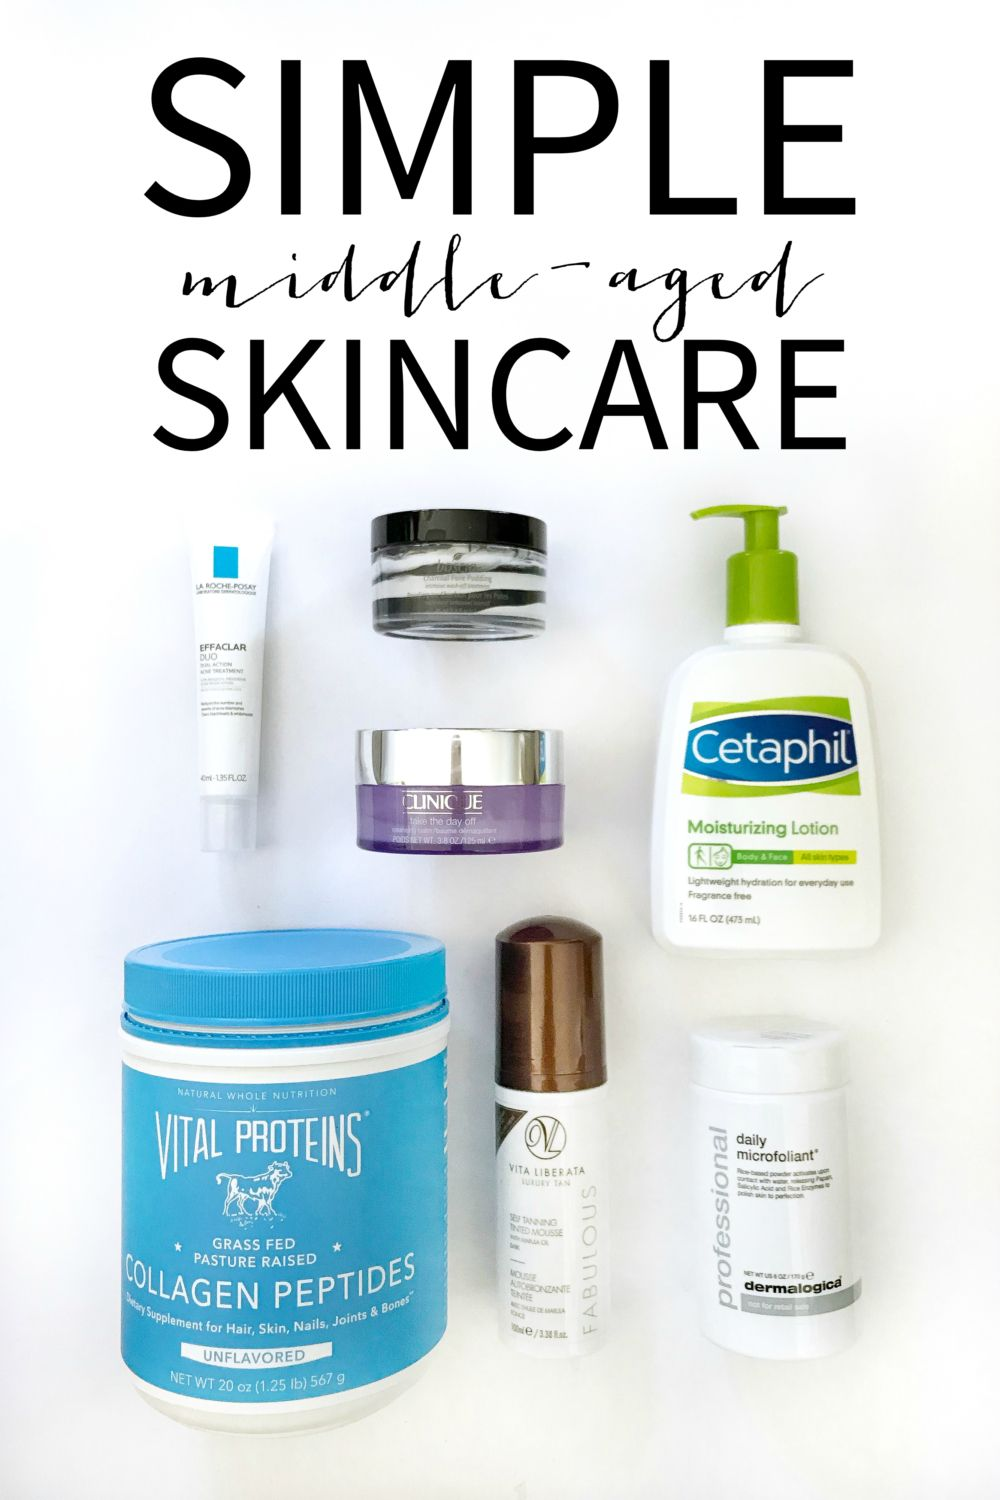 Middle Aged Skincare Routine To Keep Your Face Looking Fresh Aging Skin Care Skin Care Simple Skincare